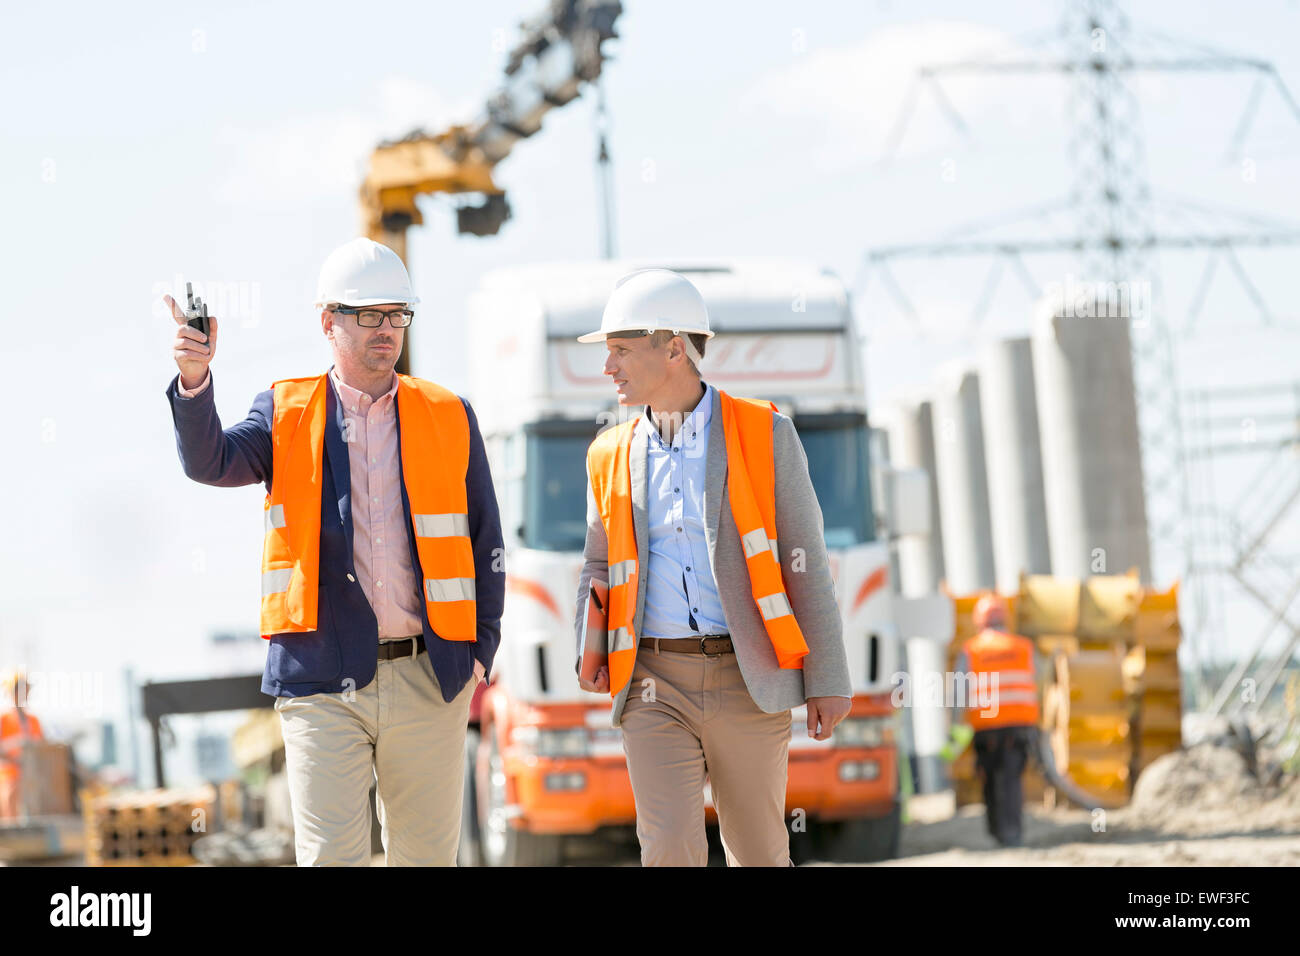 Supervisors discussing at construction site - Stock Image